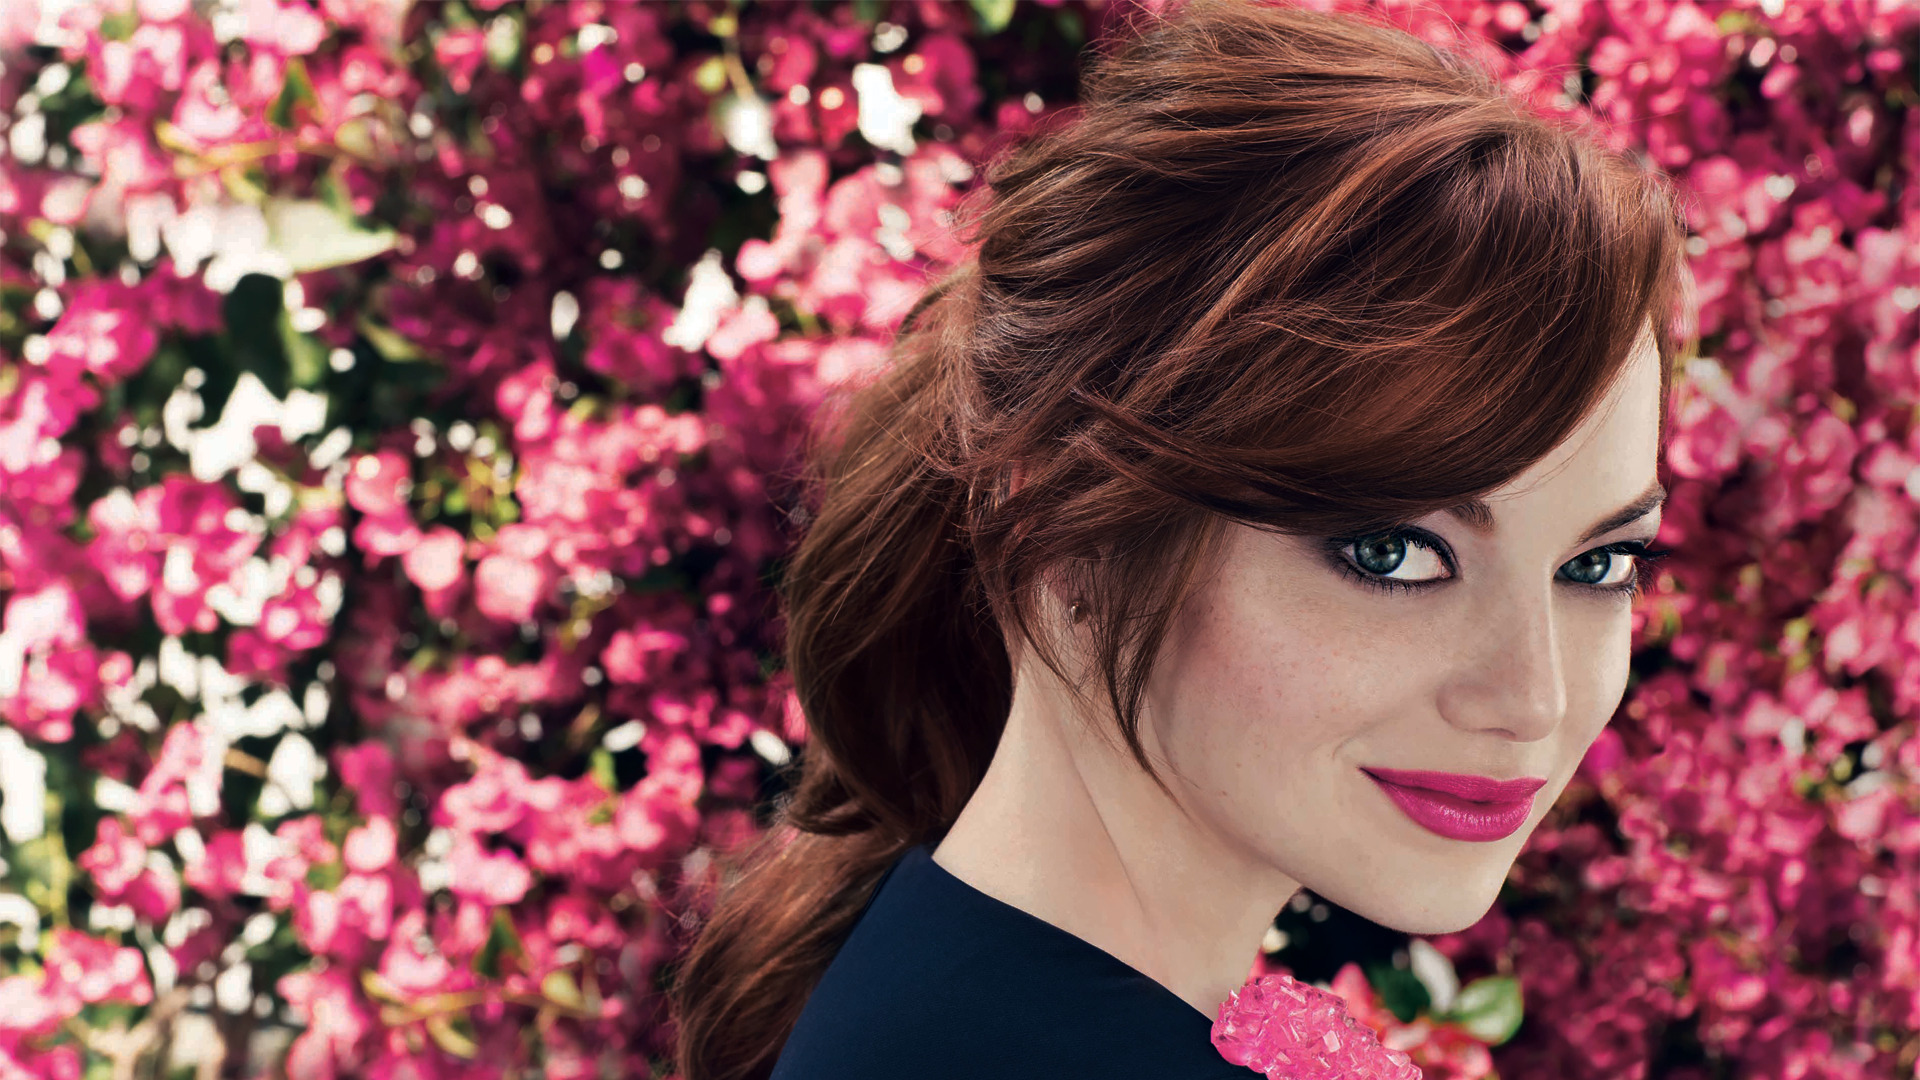 amazing emma stone fantastic look pose with background trees desktop mobile free hd images